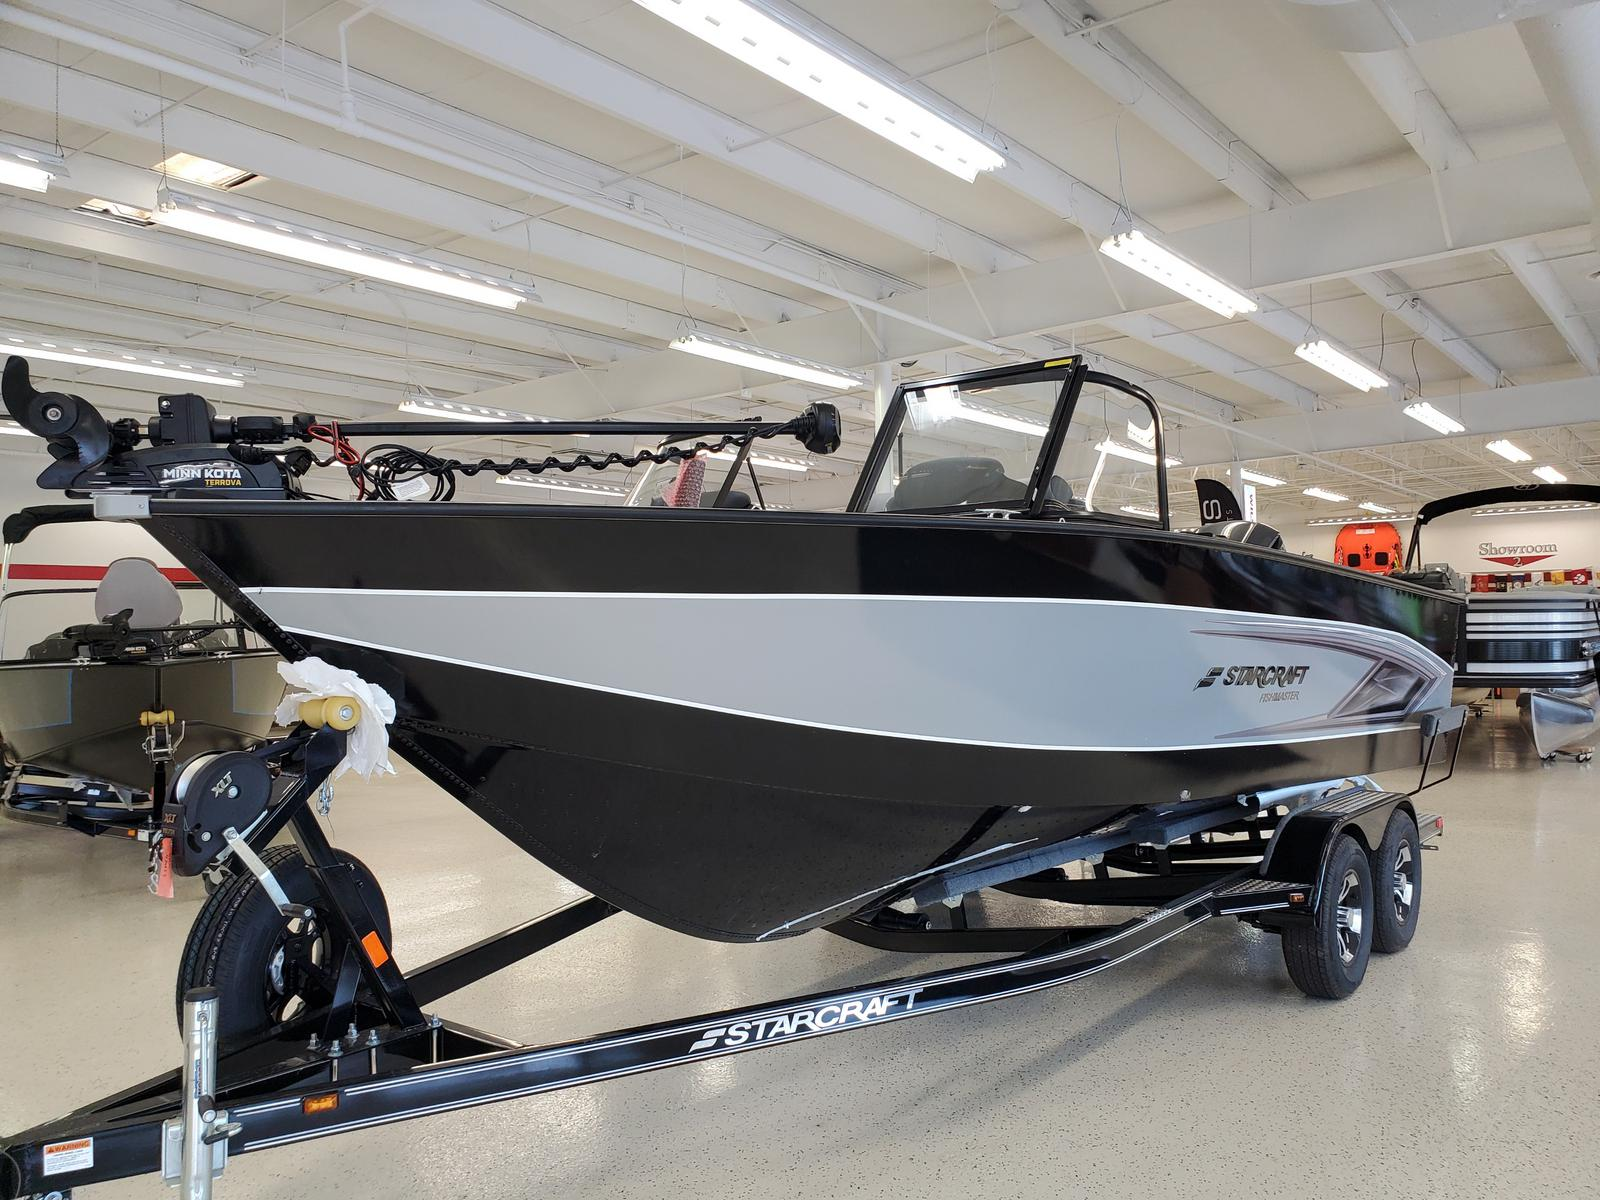 2021 STARCRAFT FISHMASTER 210 for sale